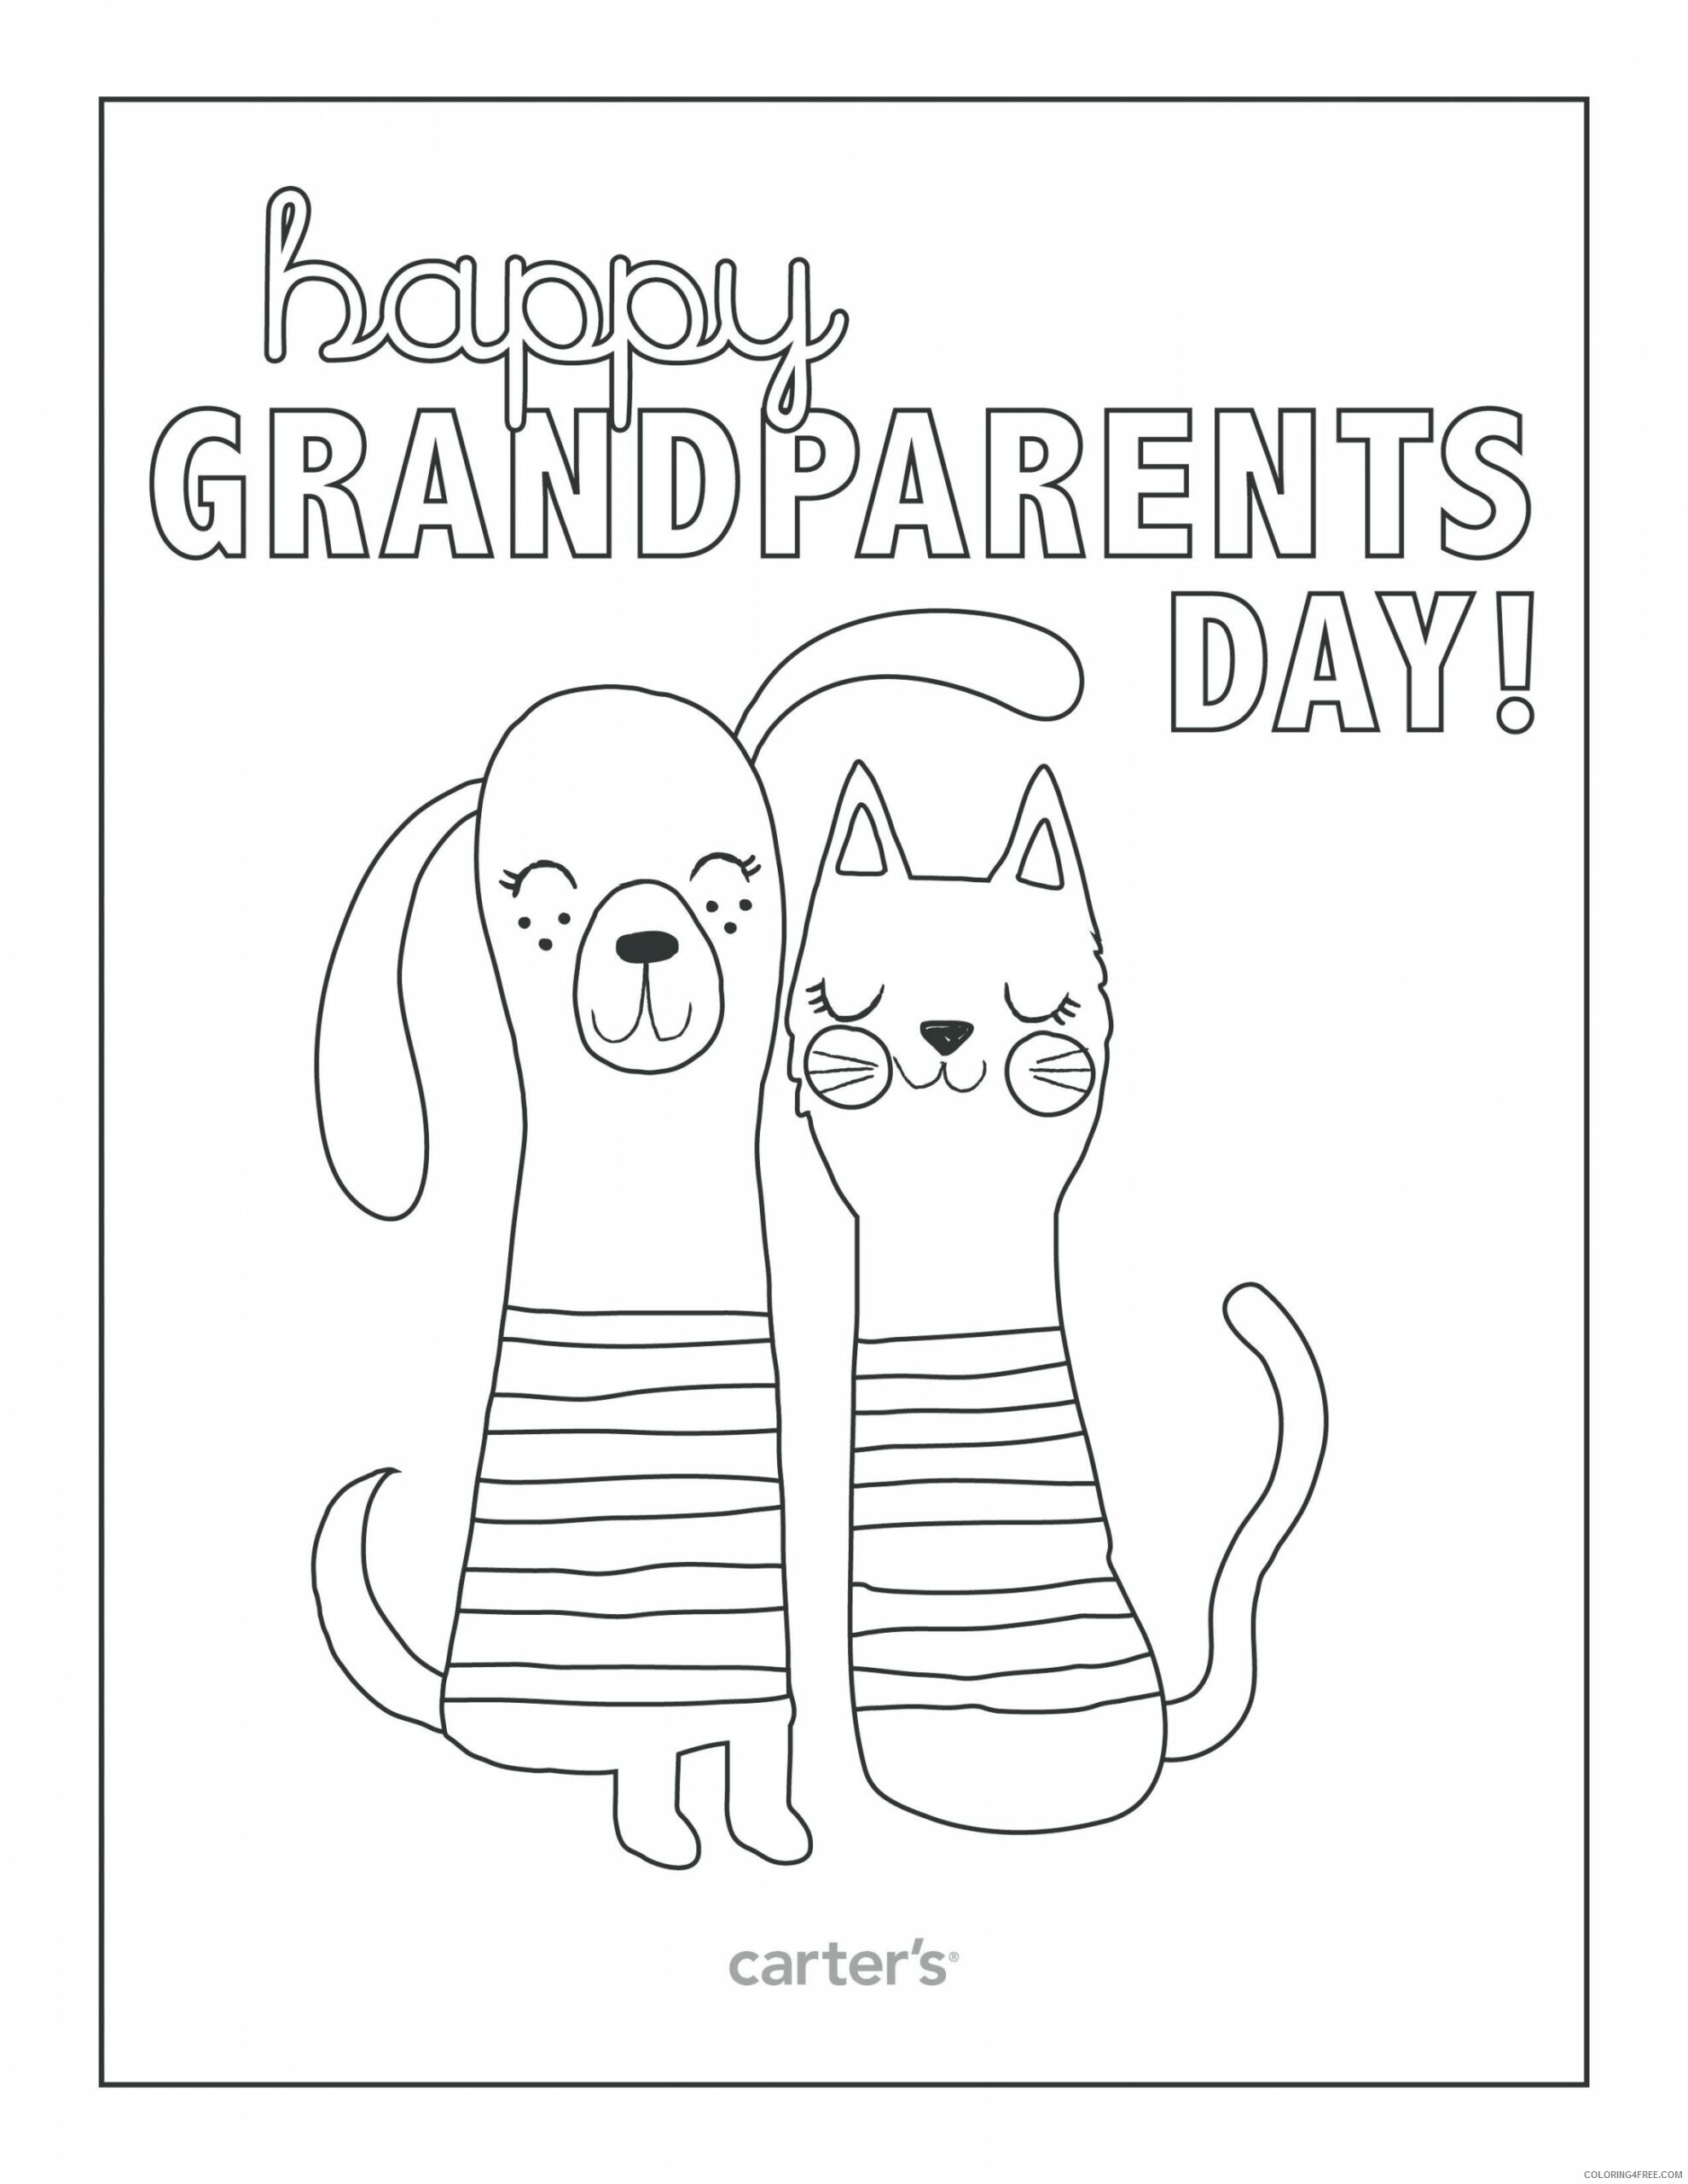 Grandparents Coloring Pages Grandparents Day Free Printable 2021 3026 Coloring4free